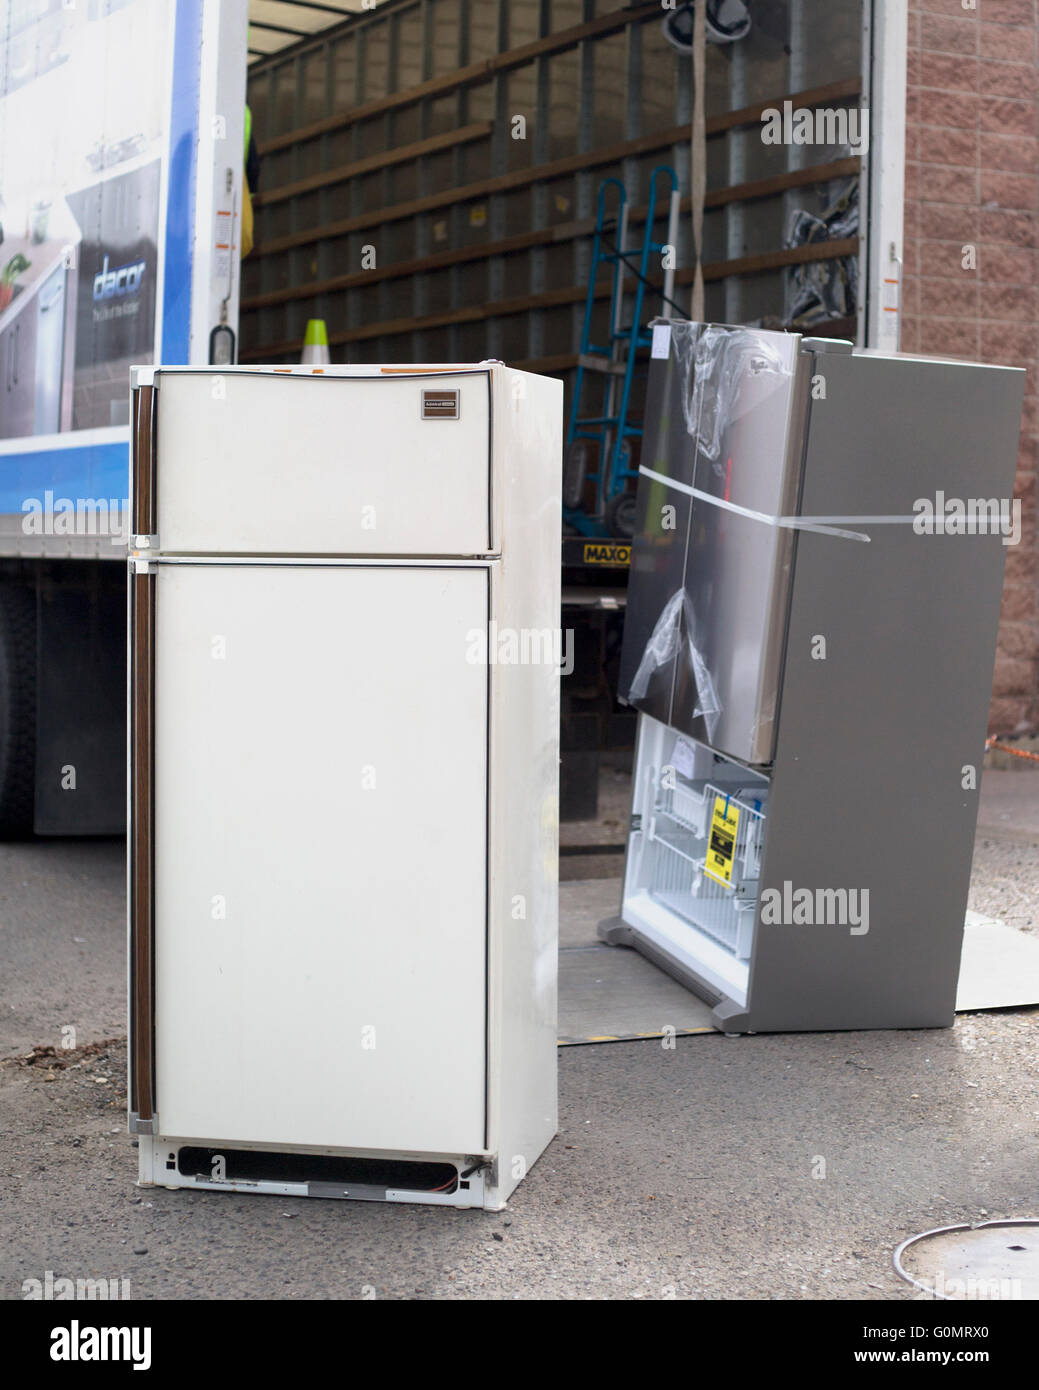 Decades-old refrigerator (front) being hauled away for proper disposal and replaced by a new, more energy efficient - Stock Image